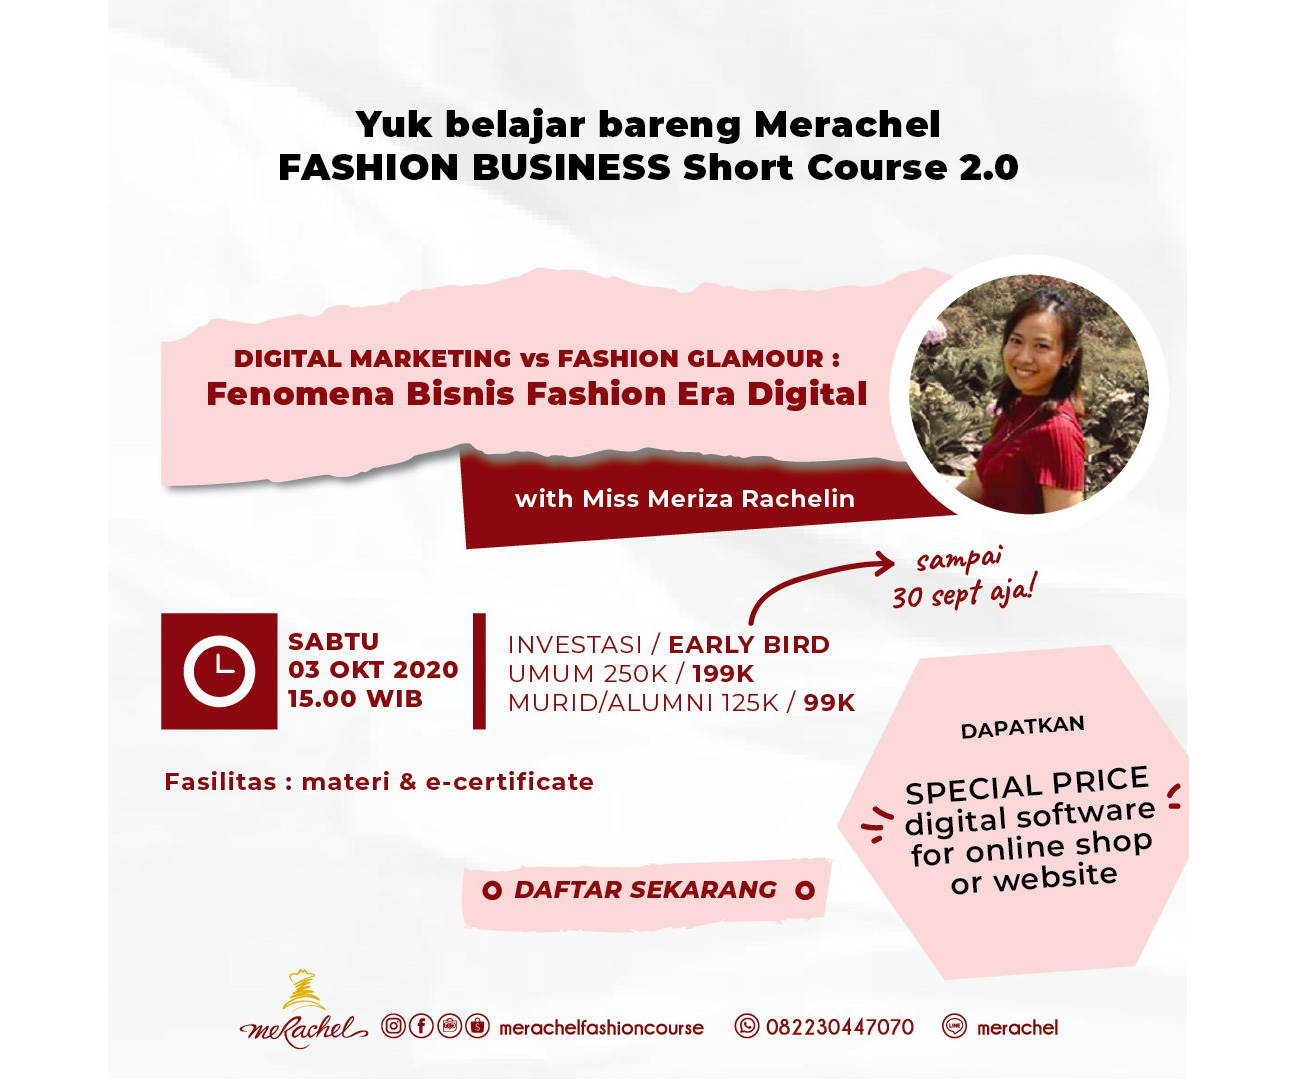 Fashion Business Short Course 2.0